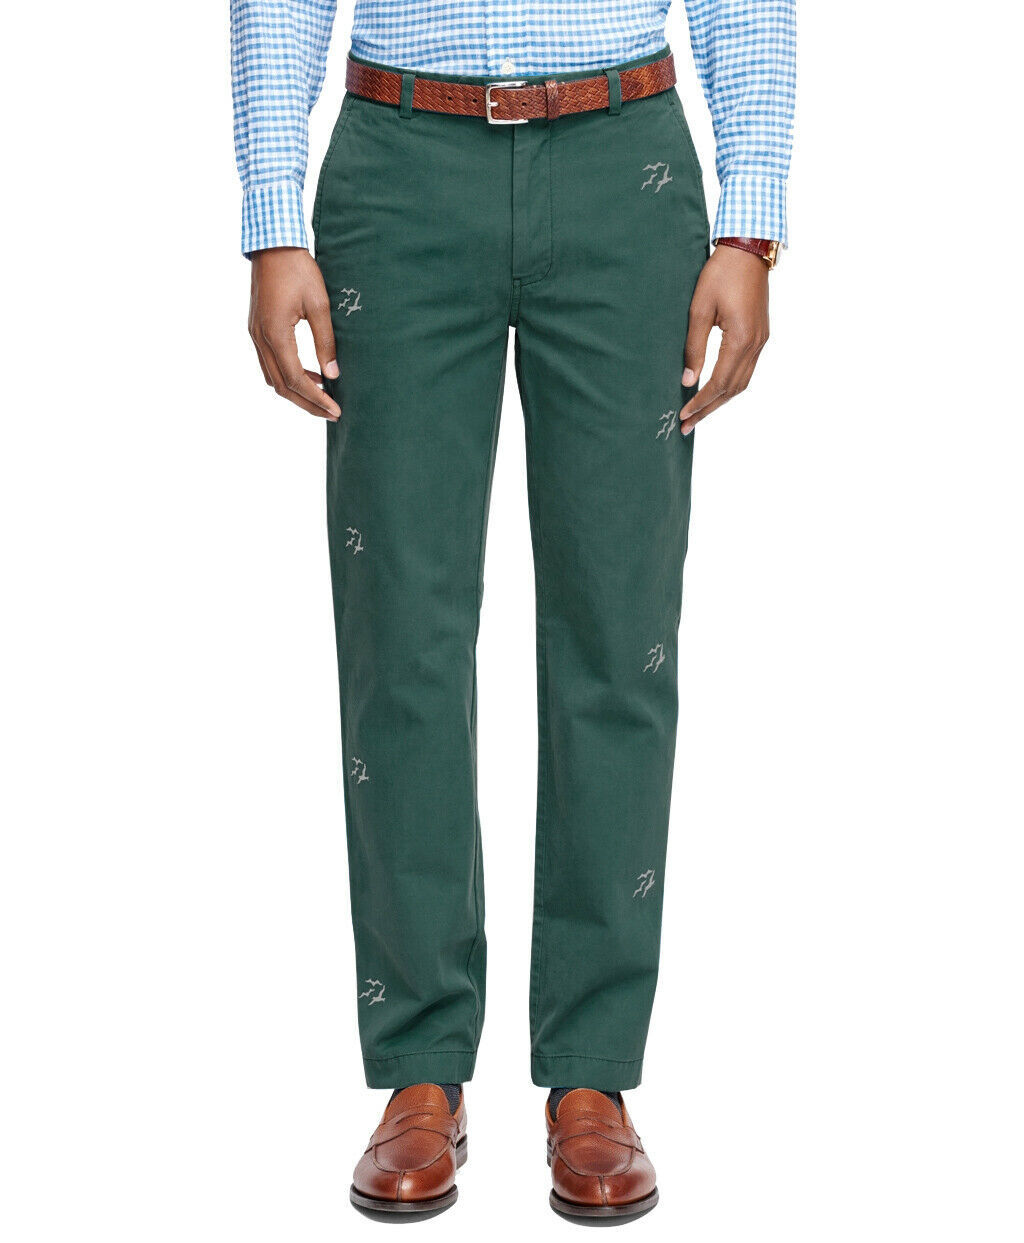 Primary image for Brooks Brothers Men's Milano Fit Seagull Embroidered Chinos, Green (35x32)5342-9